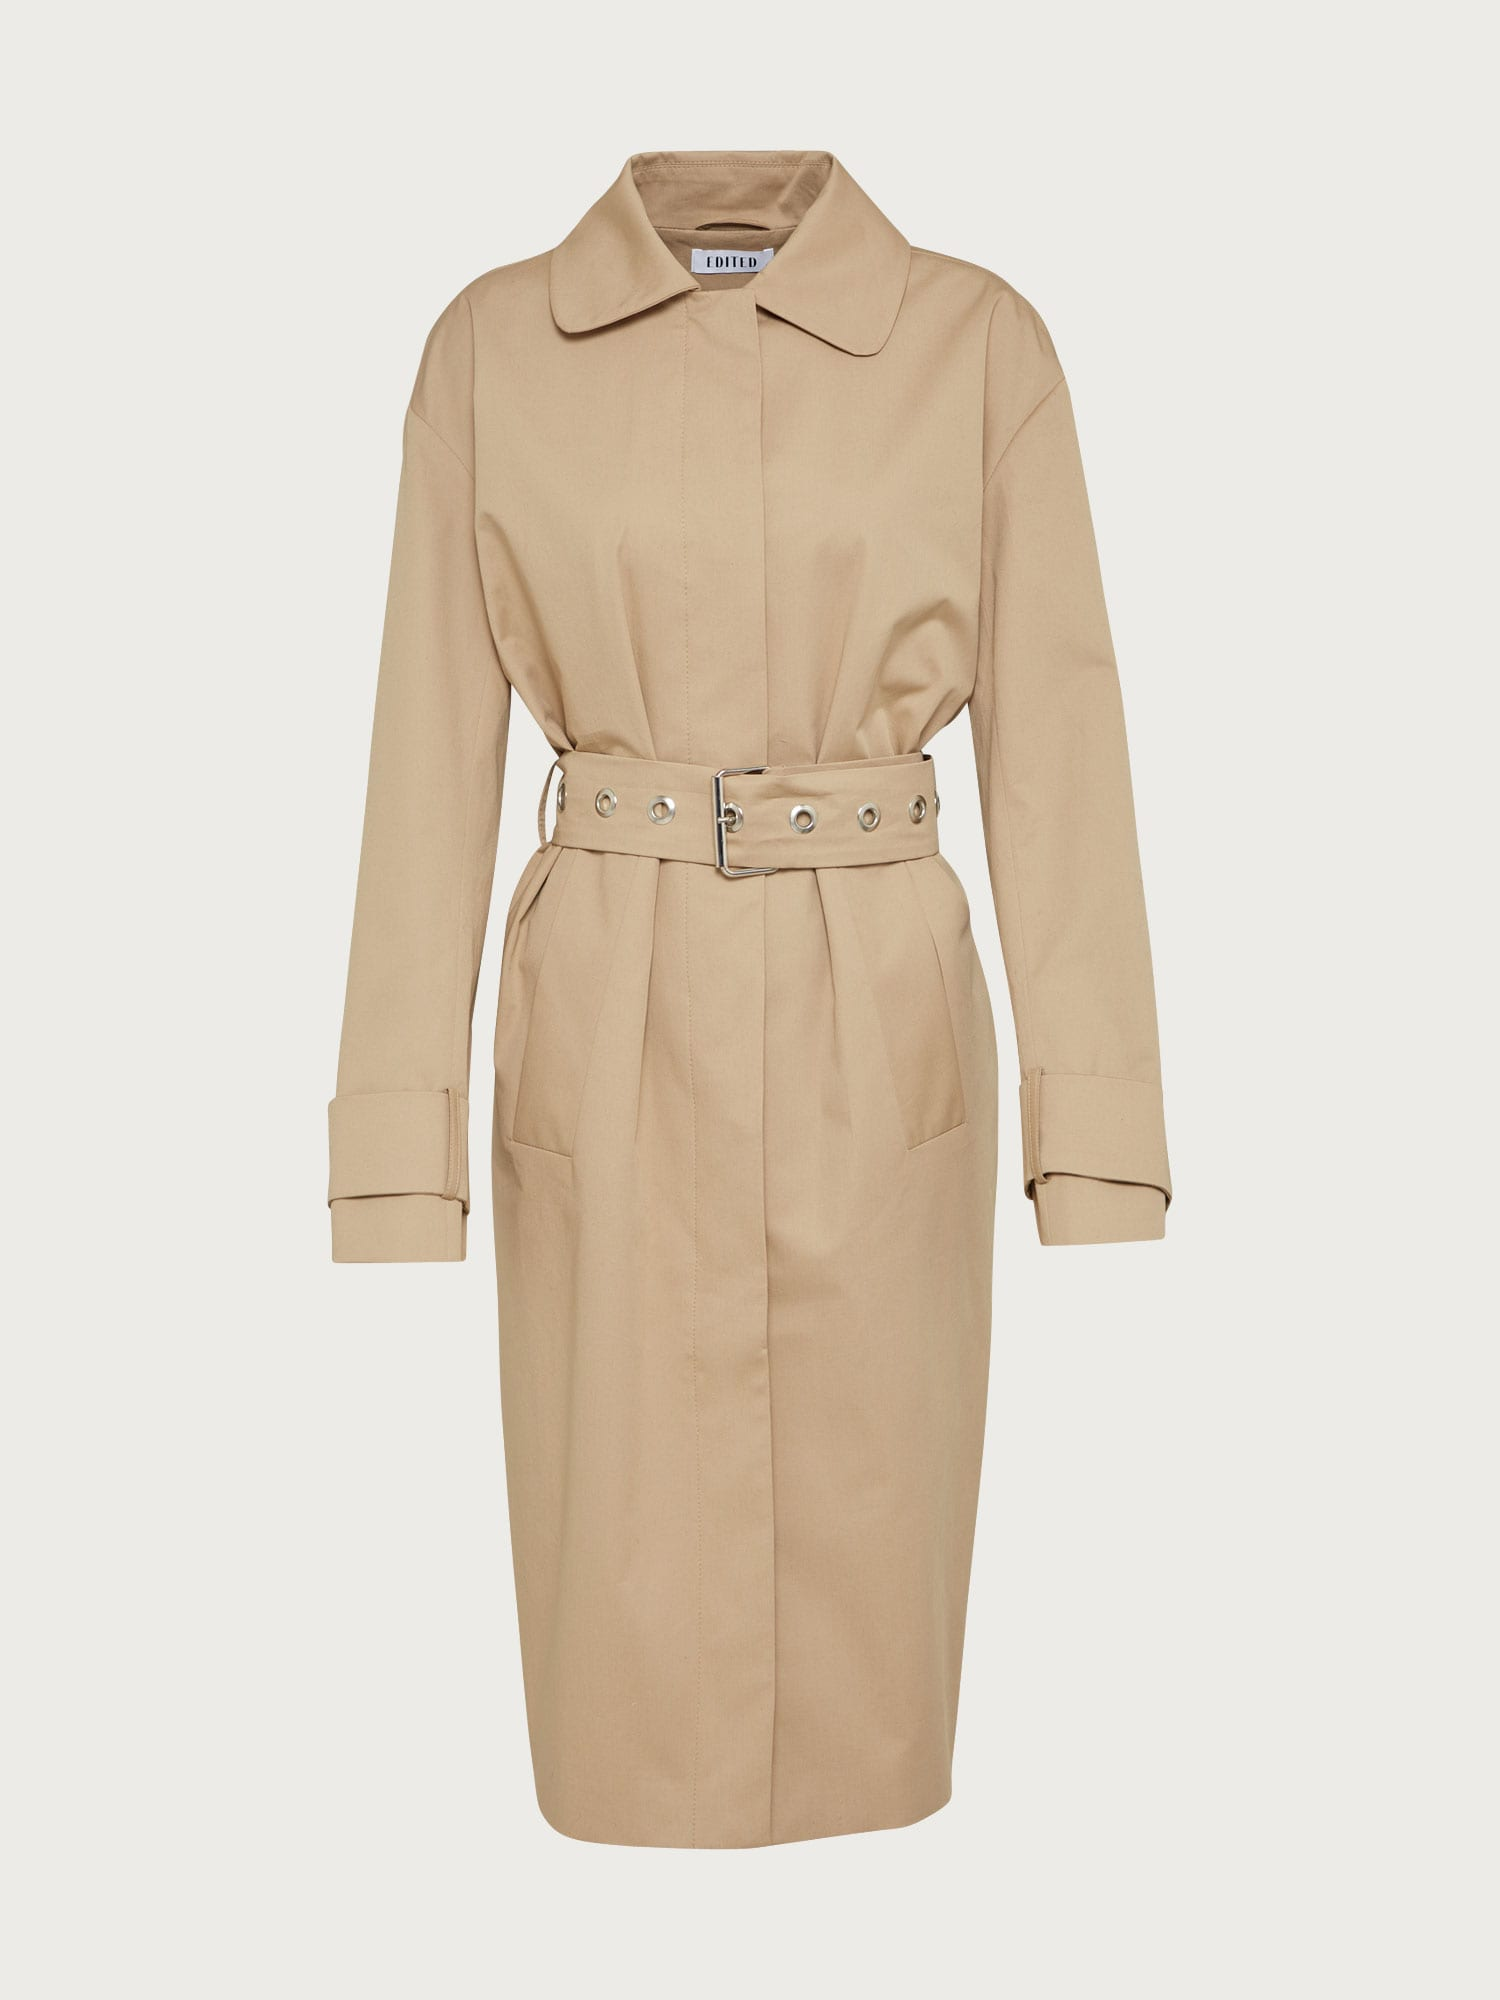 edited - Trenchcoat 'Romy'